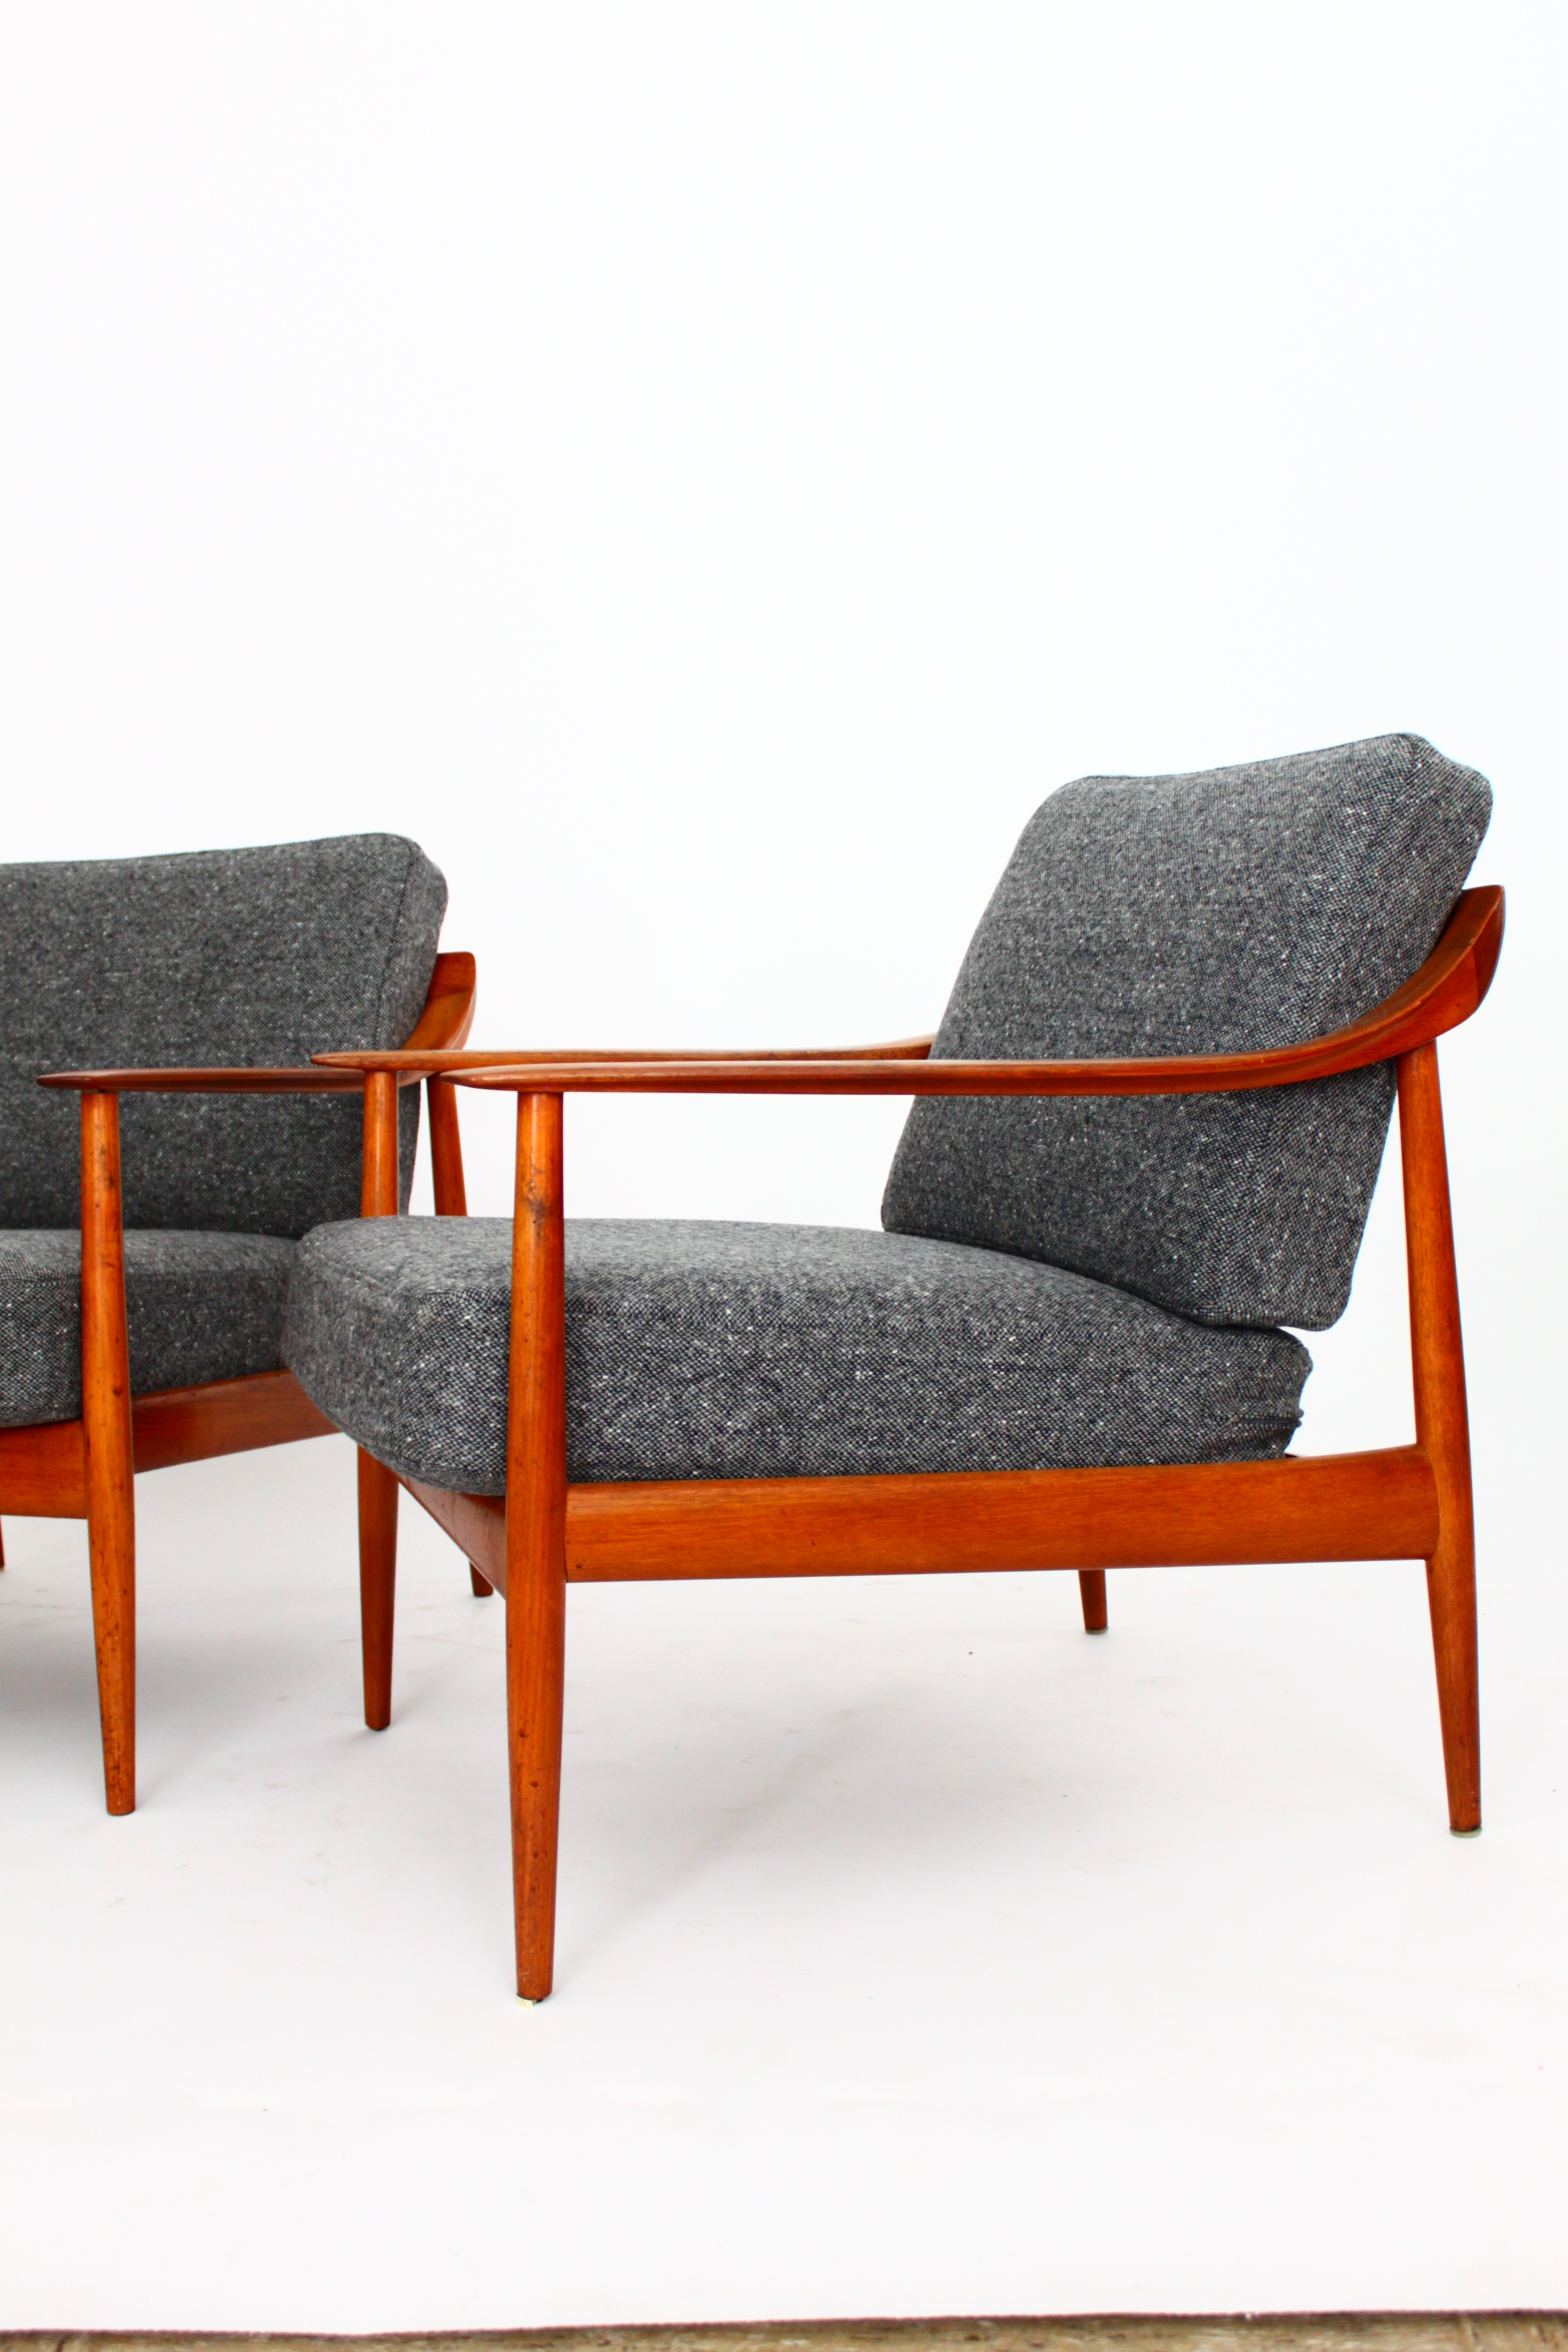 walter Knolll arm chairs